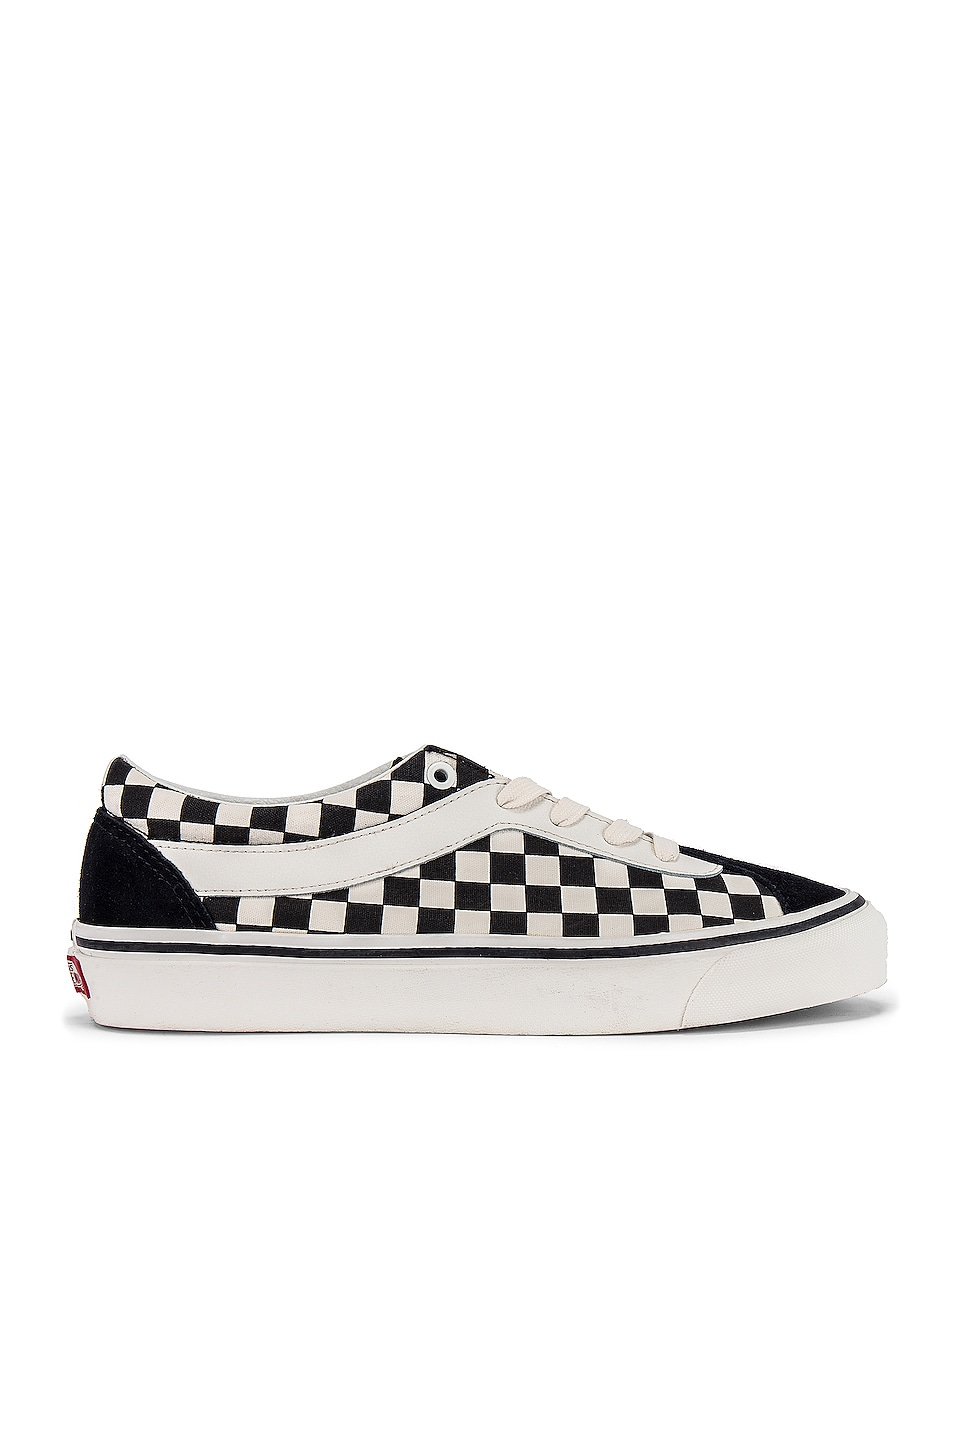 Vans Checkered Sneakers en Black & Marshmallow